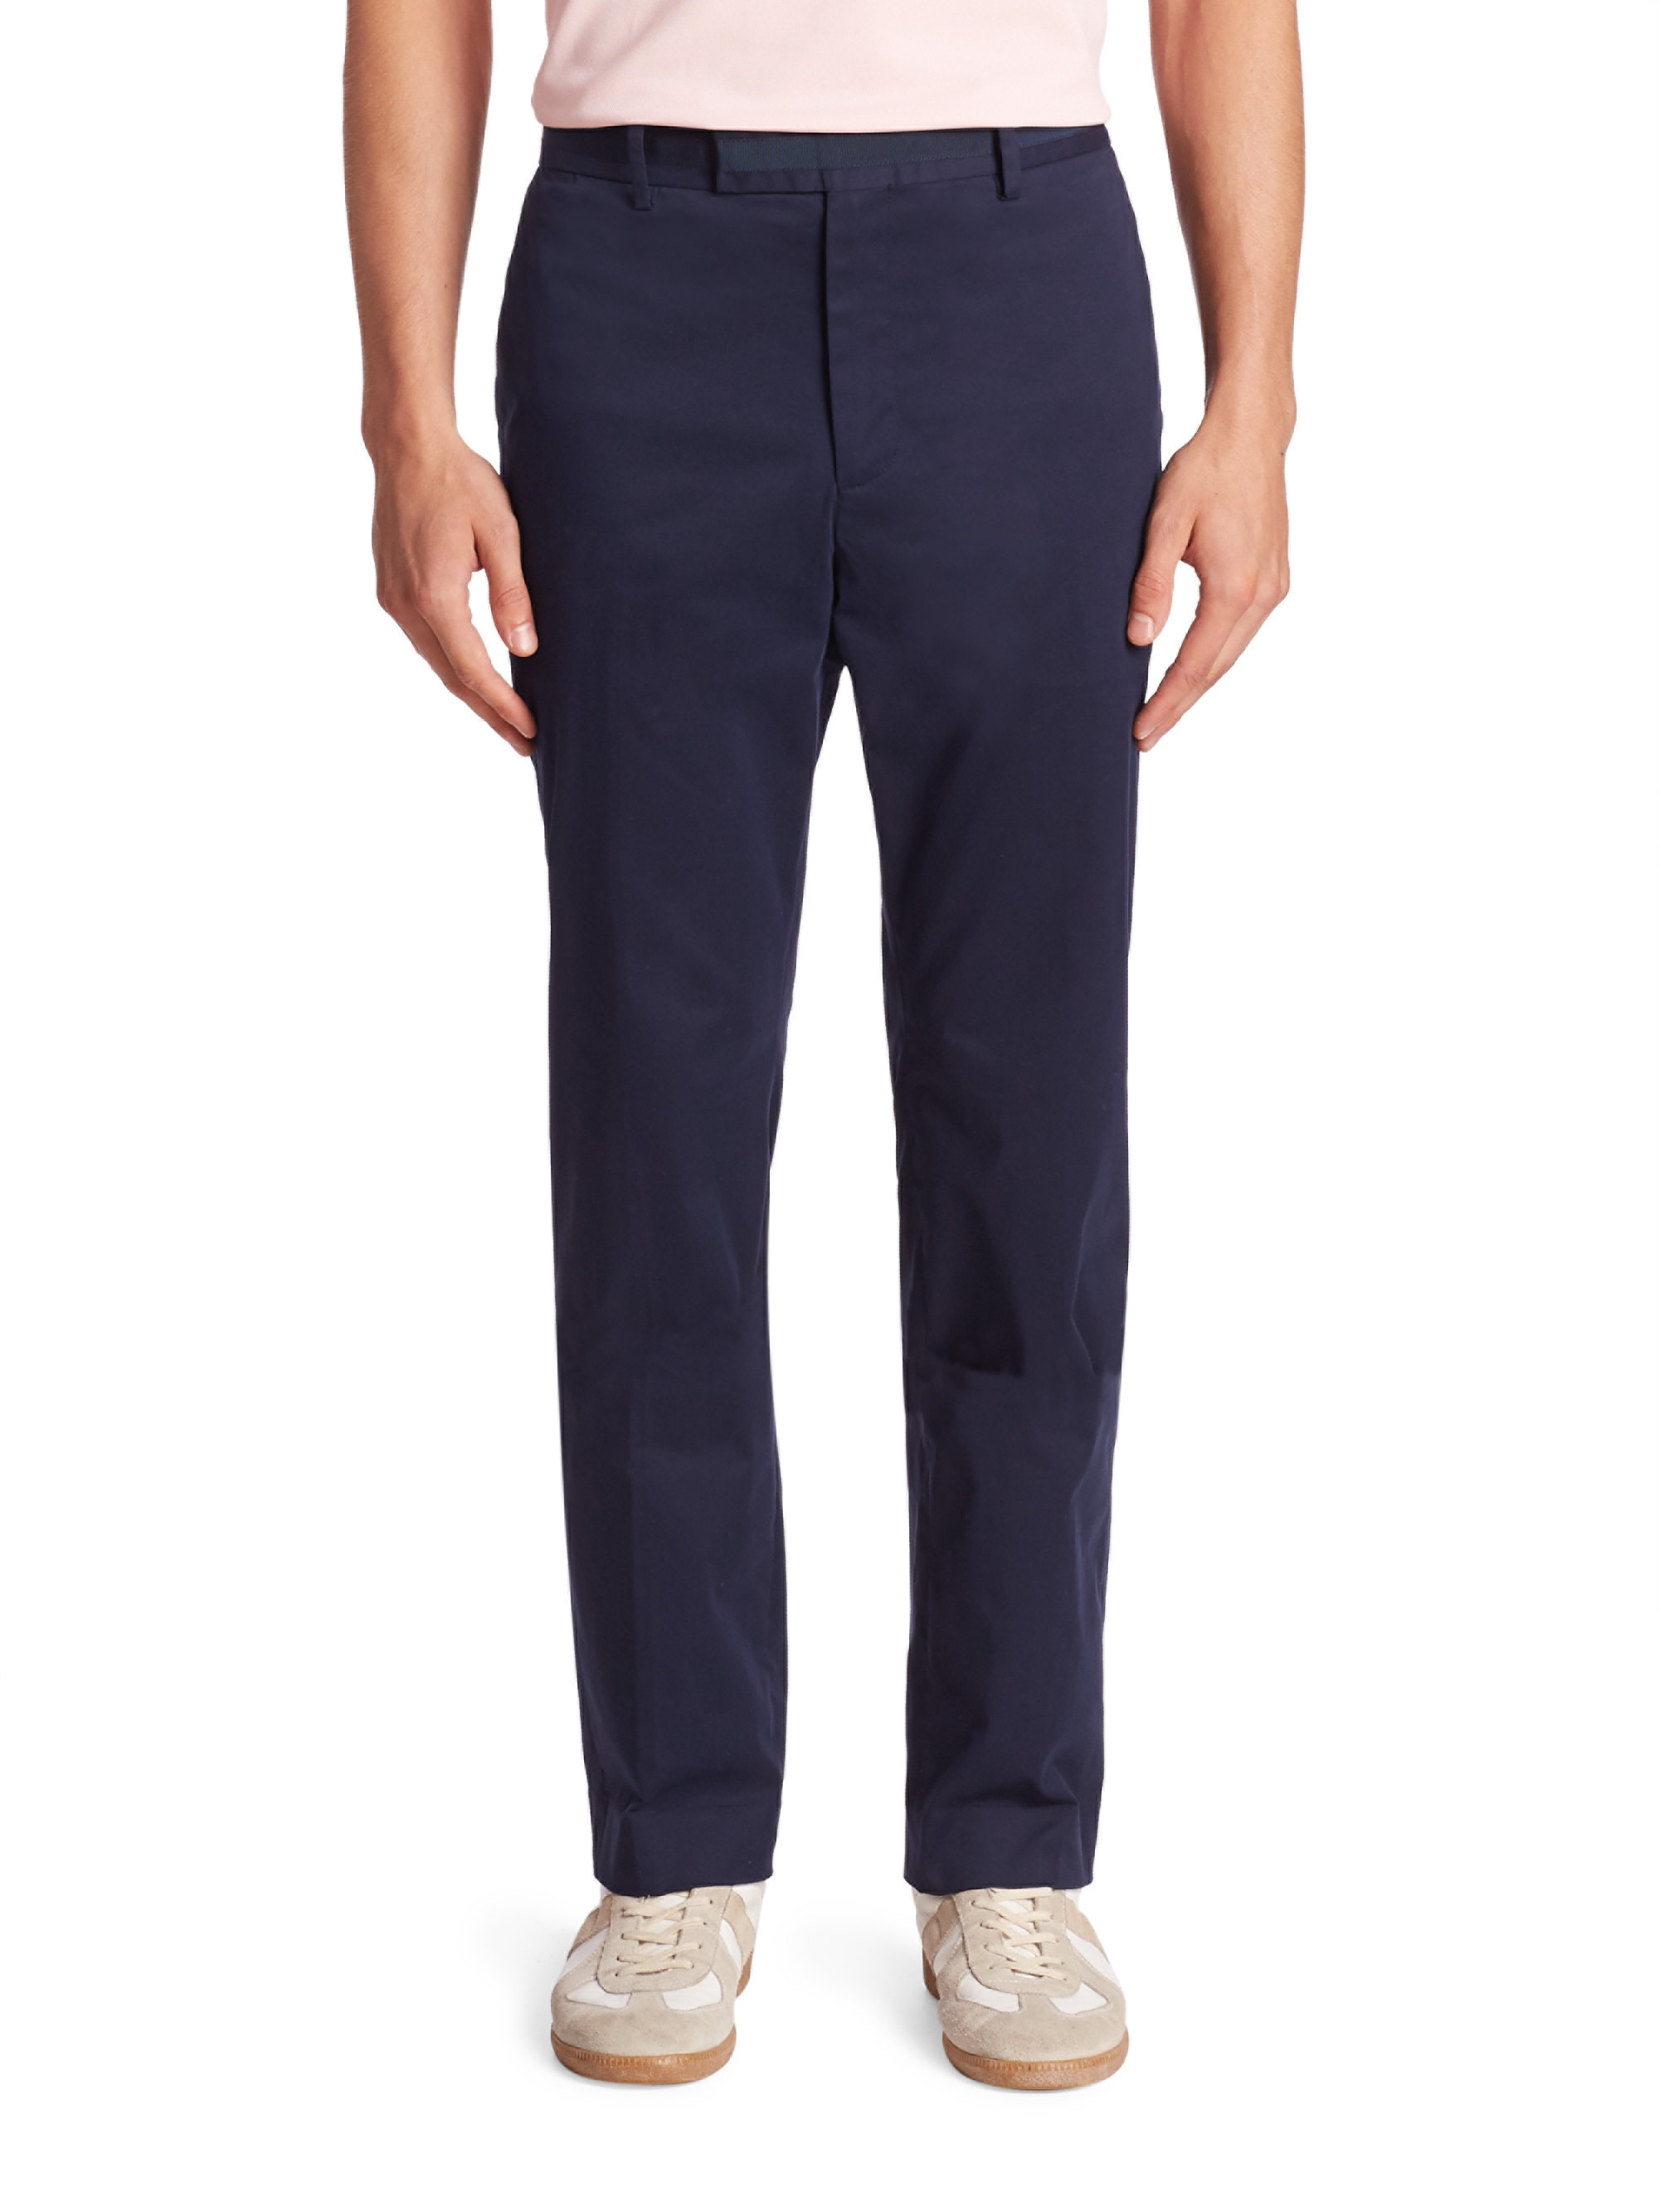 G/fore Contrast Waistband Pants in Blue for Men